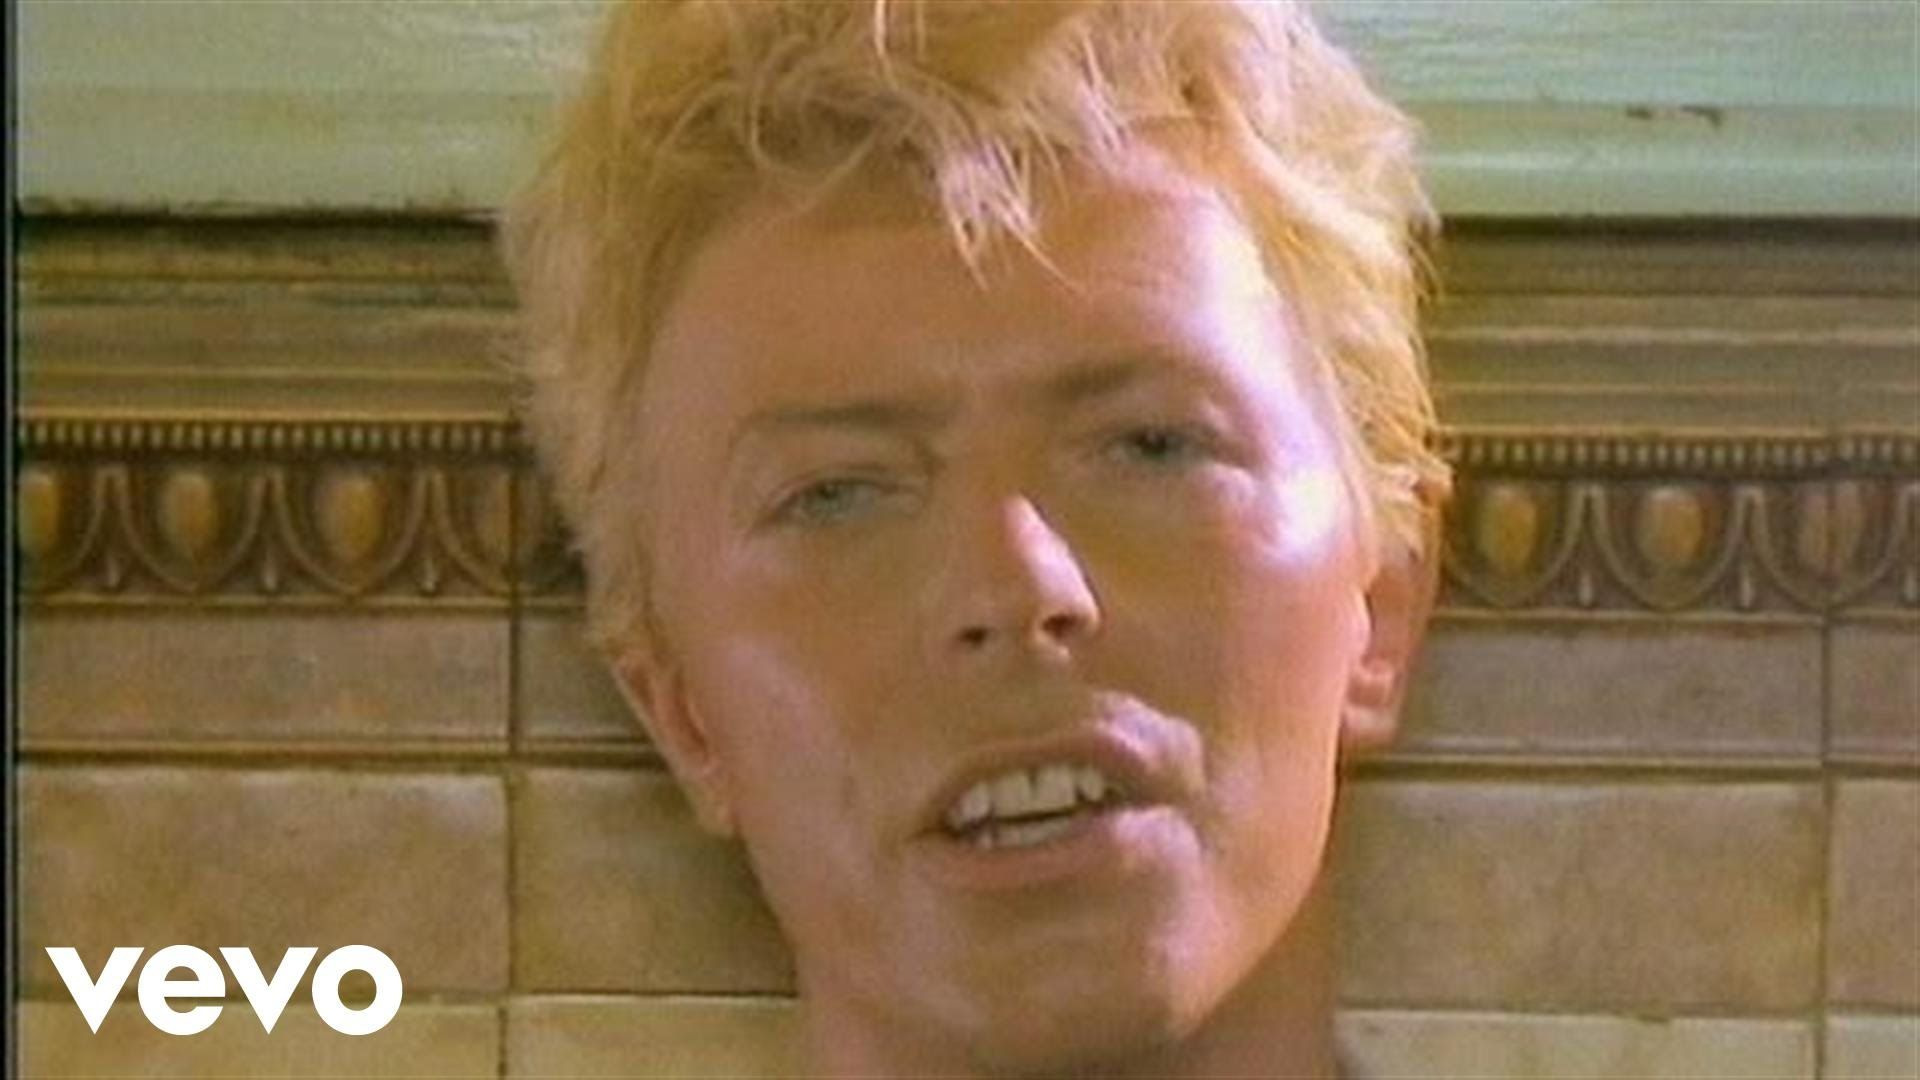 Music video by David Bowie performing Let's Dance. Taken from the album 'Heroes' Buy the David Bowie back catalogue on iTunes here: http://smarturl.it/bowiei...